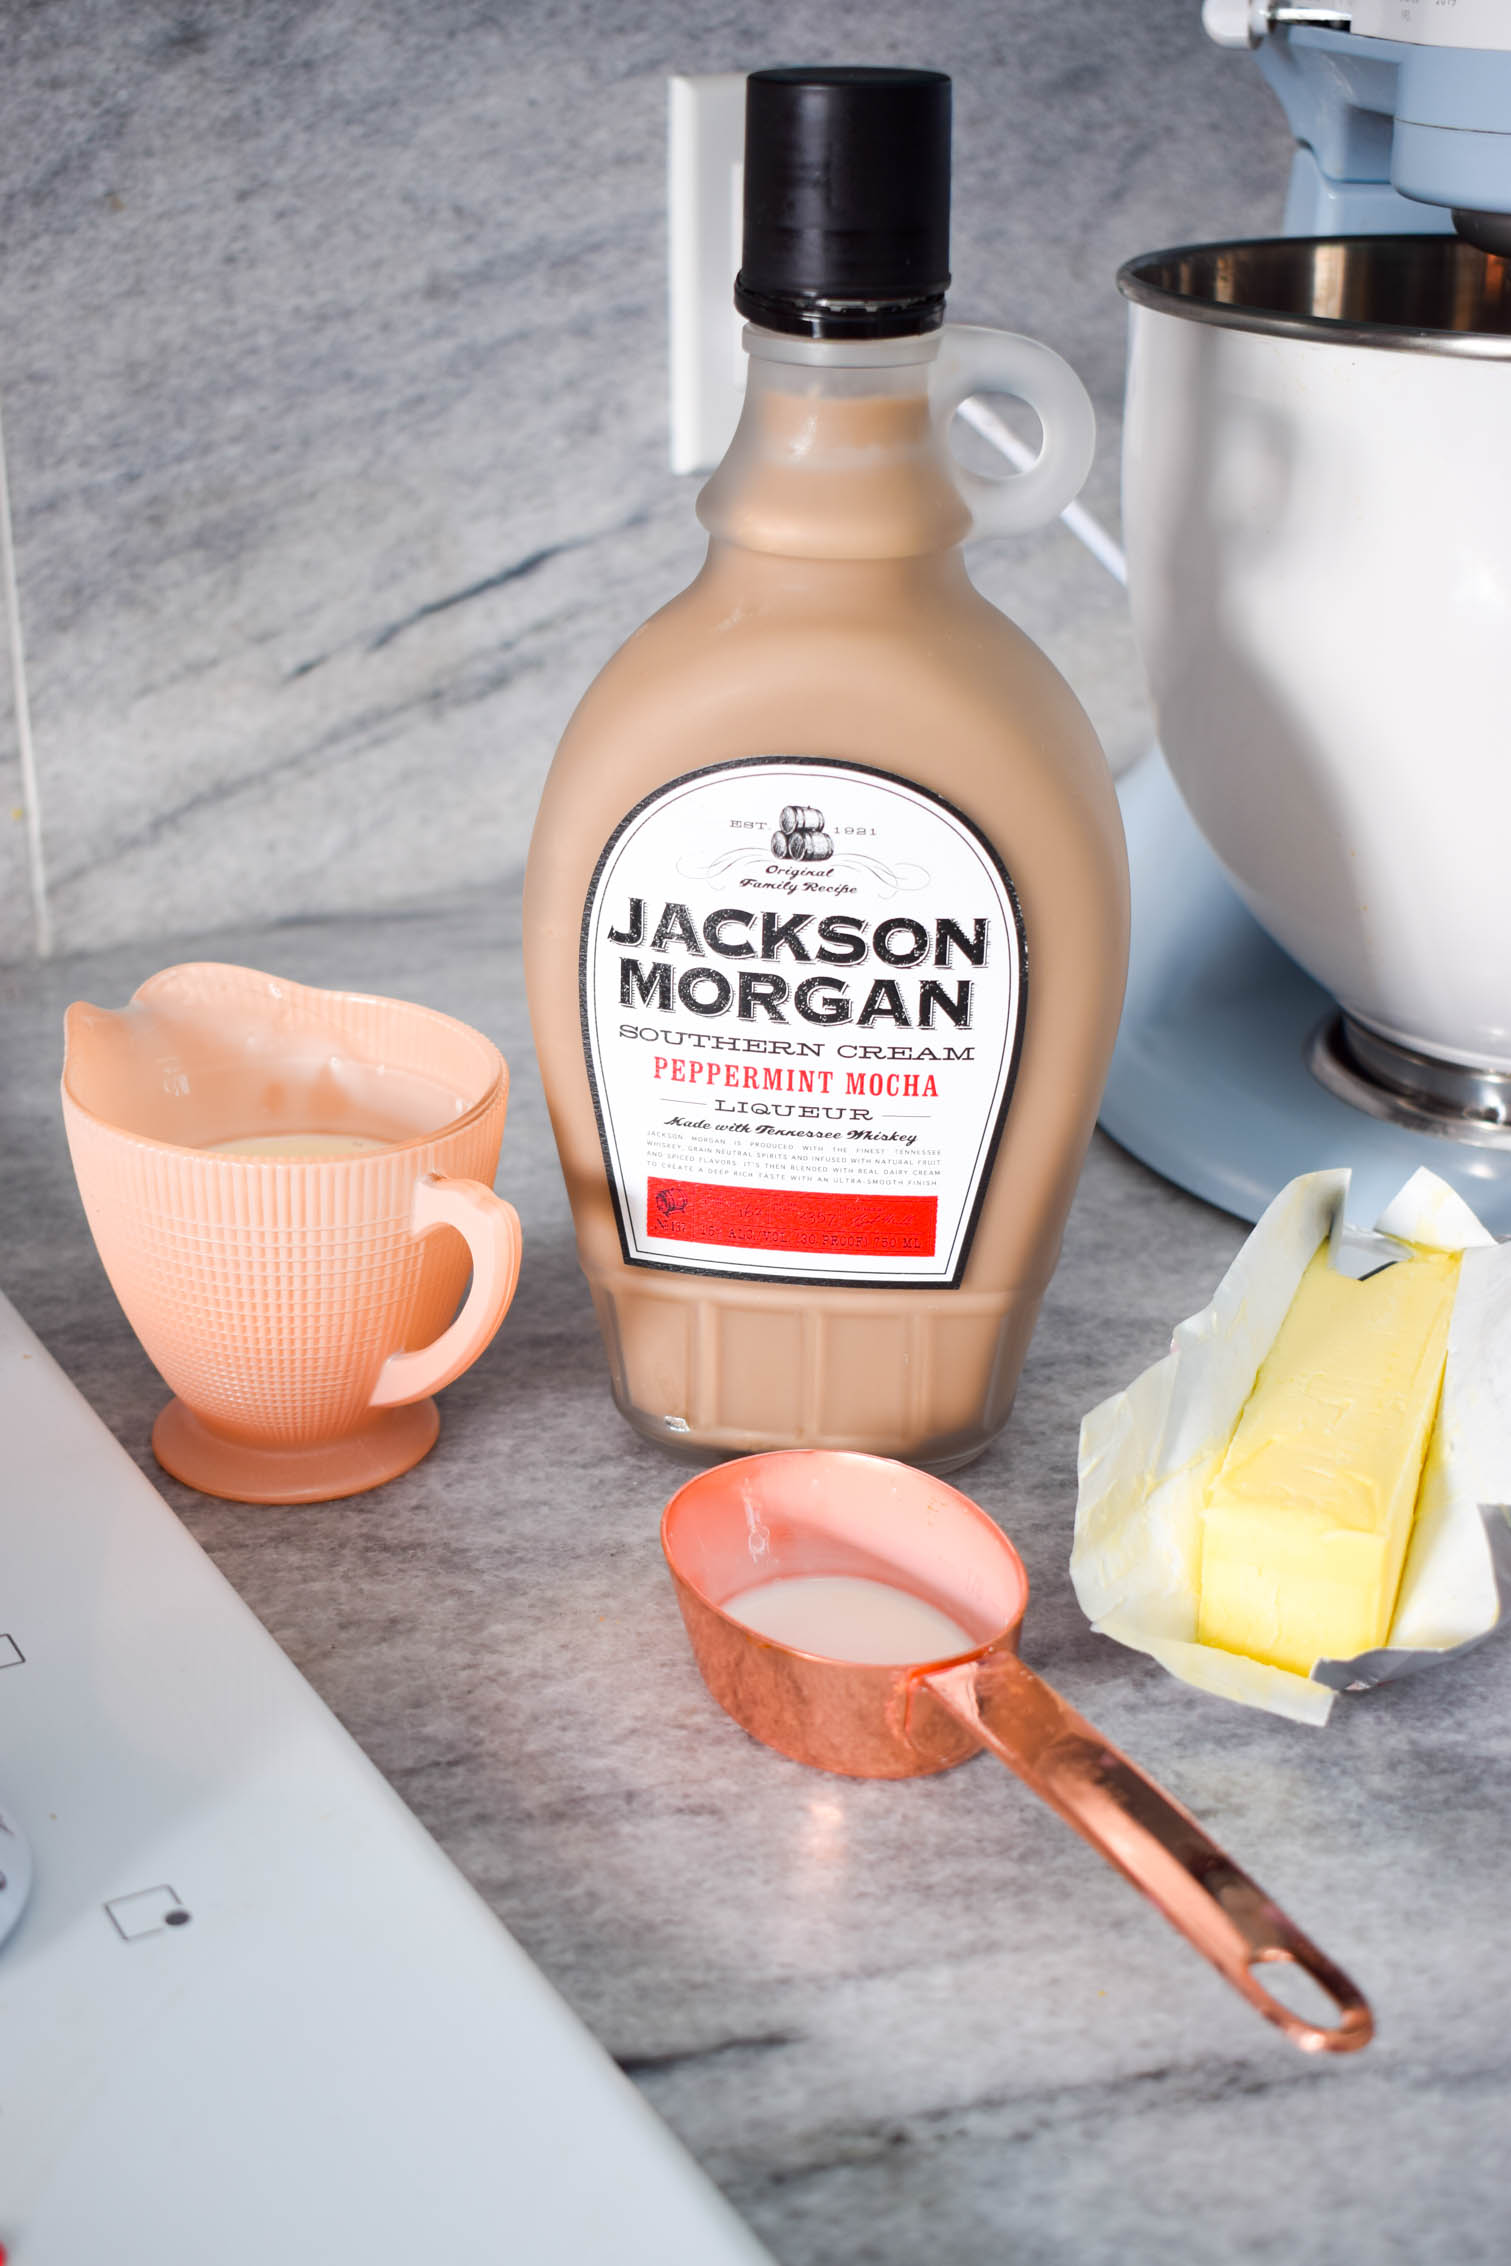 Peppermint Mocha Whiskey Caramel Sauce, because what else could you ever want on waffles or icecream? Make your own using Jackson Morgan's Southern Cream